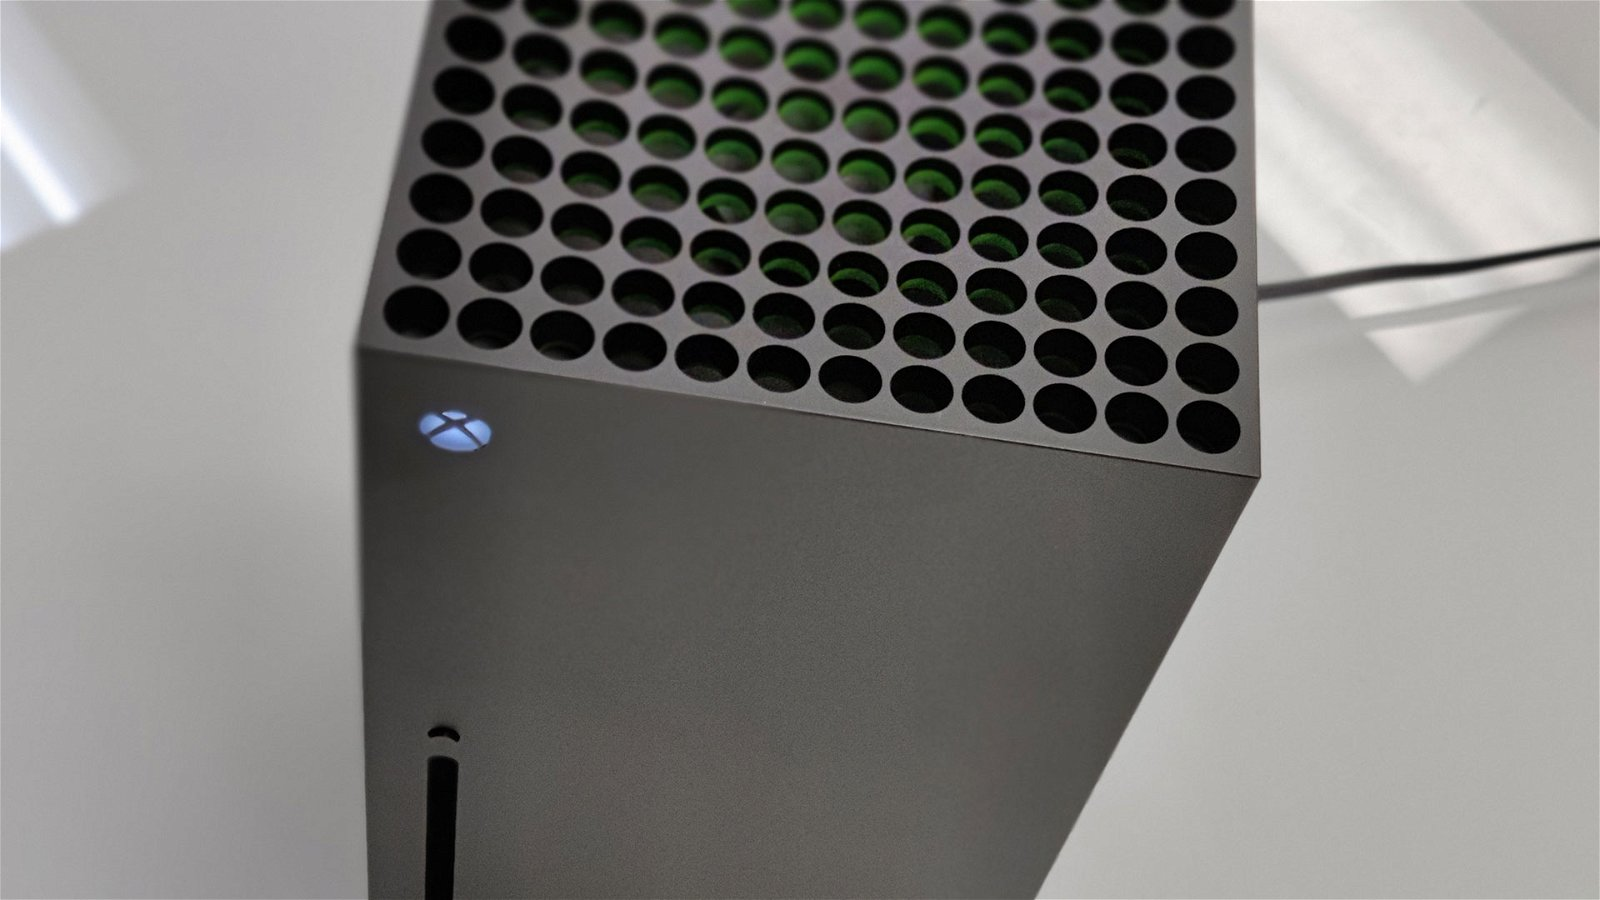 Xbox Series X Review - Power, Performance, and Value 13